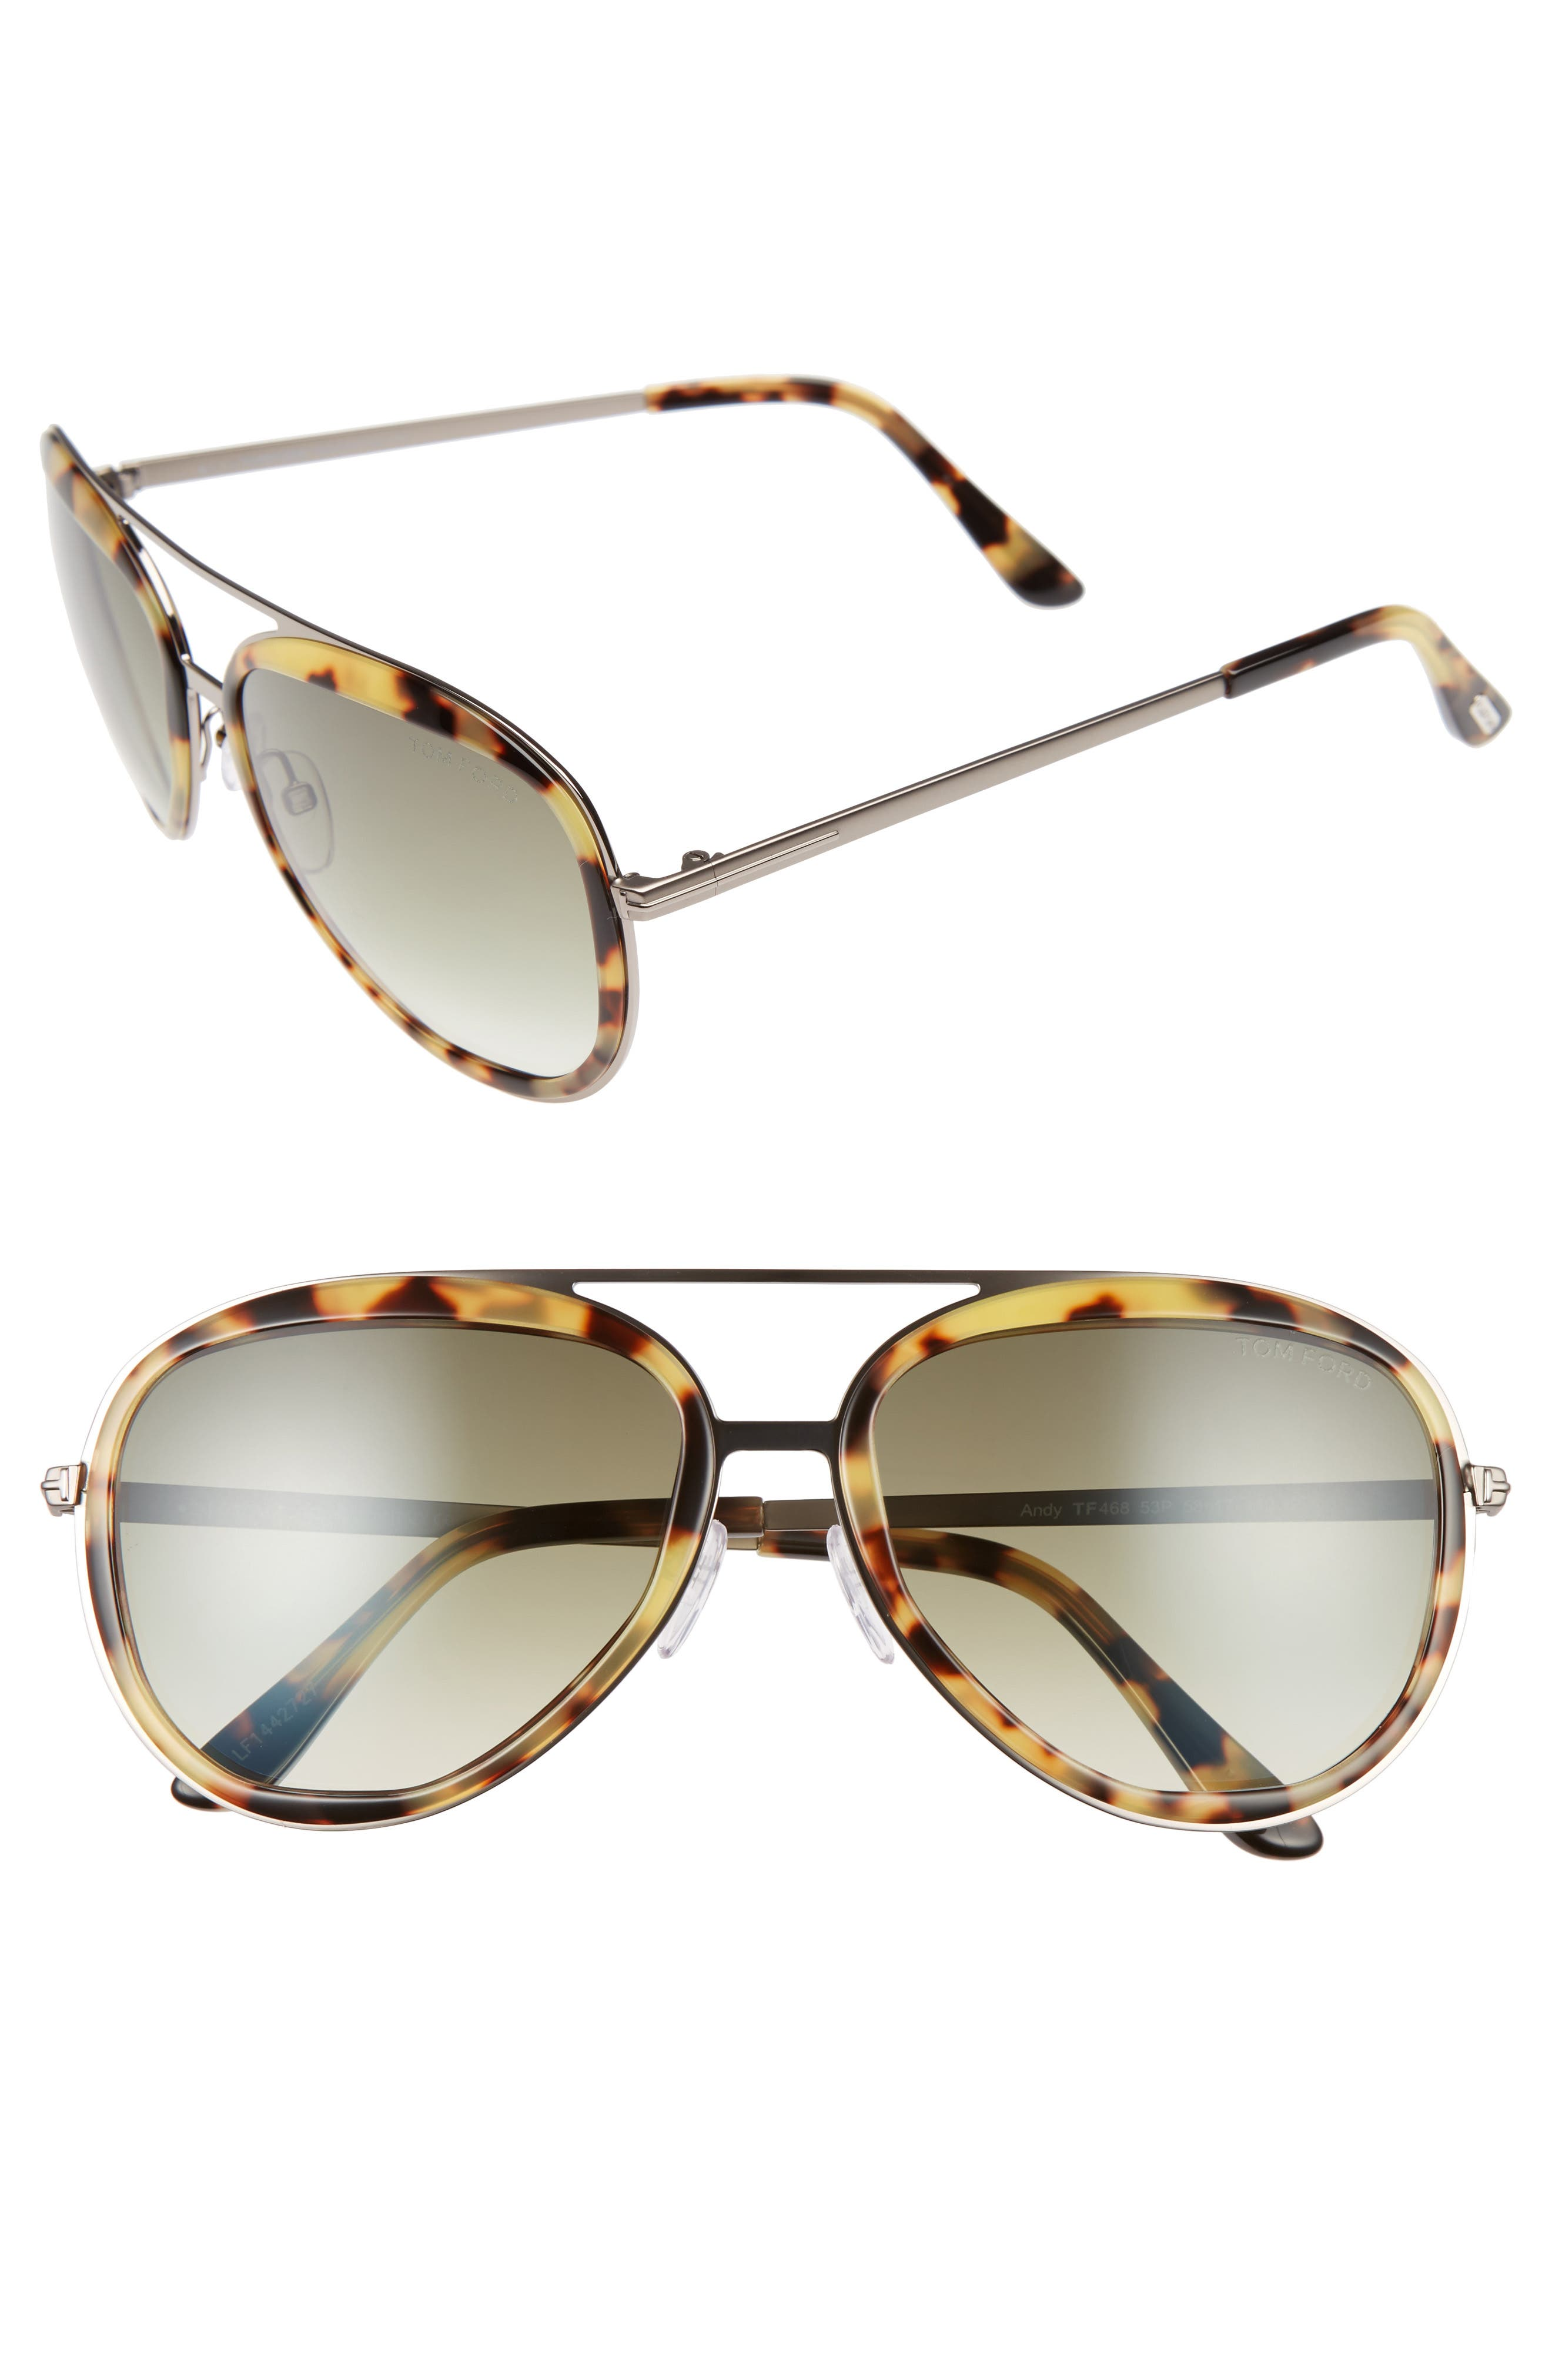 Andy 58mm Aviator Sunglasses,                             Main thumbnail 1, color,                             020